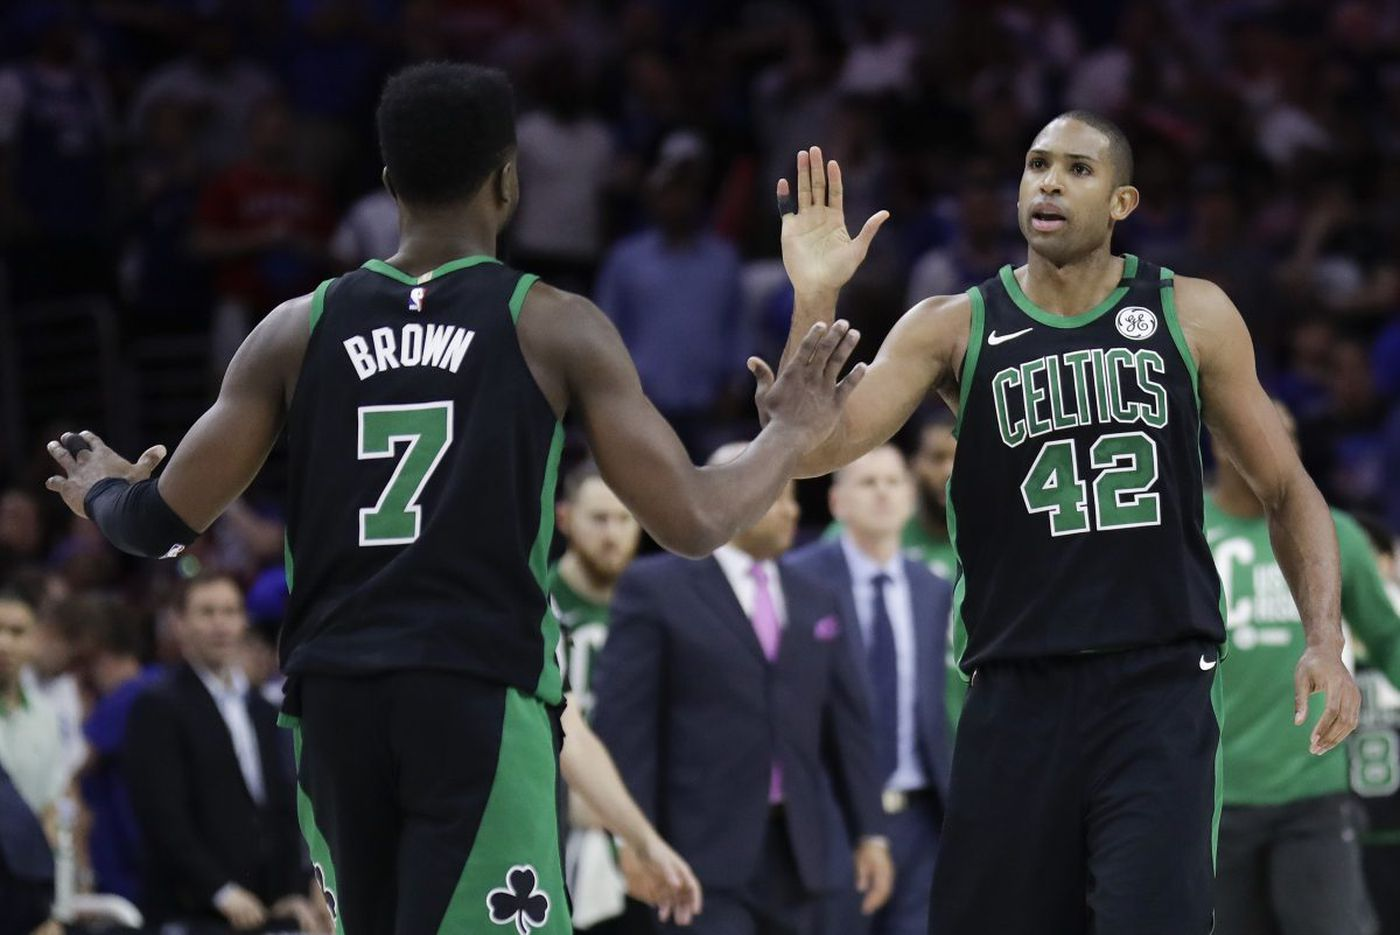 Celtics show great resolve in Game 3 overtime win over Sixers